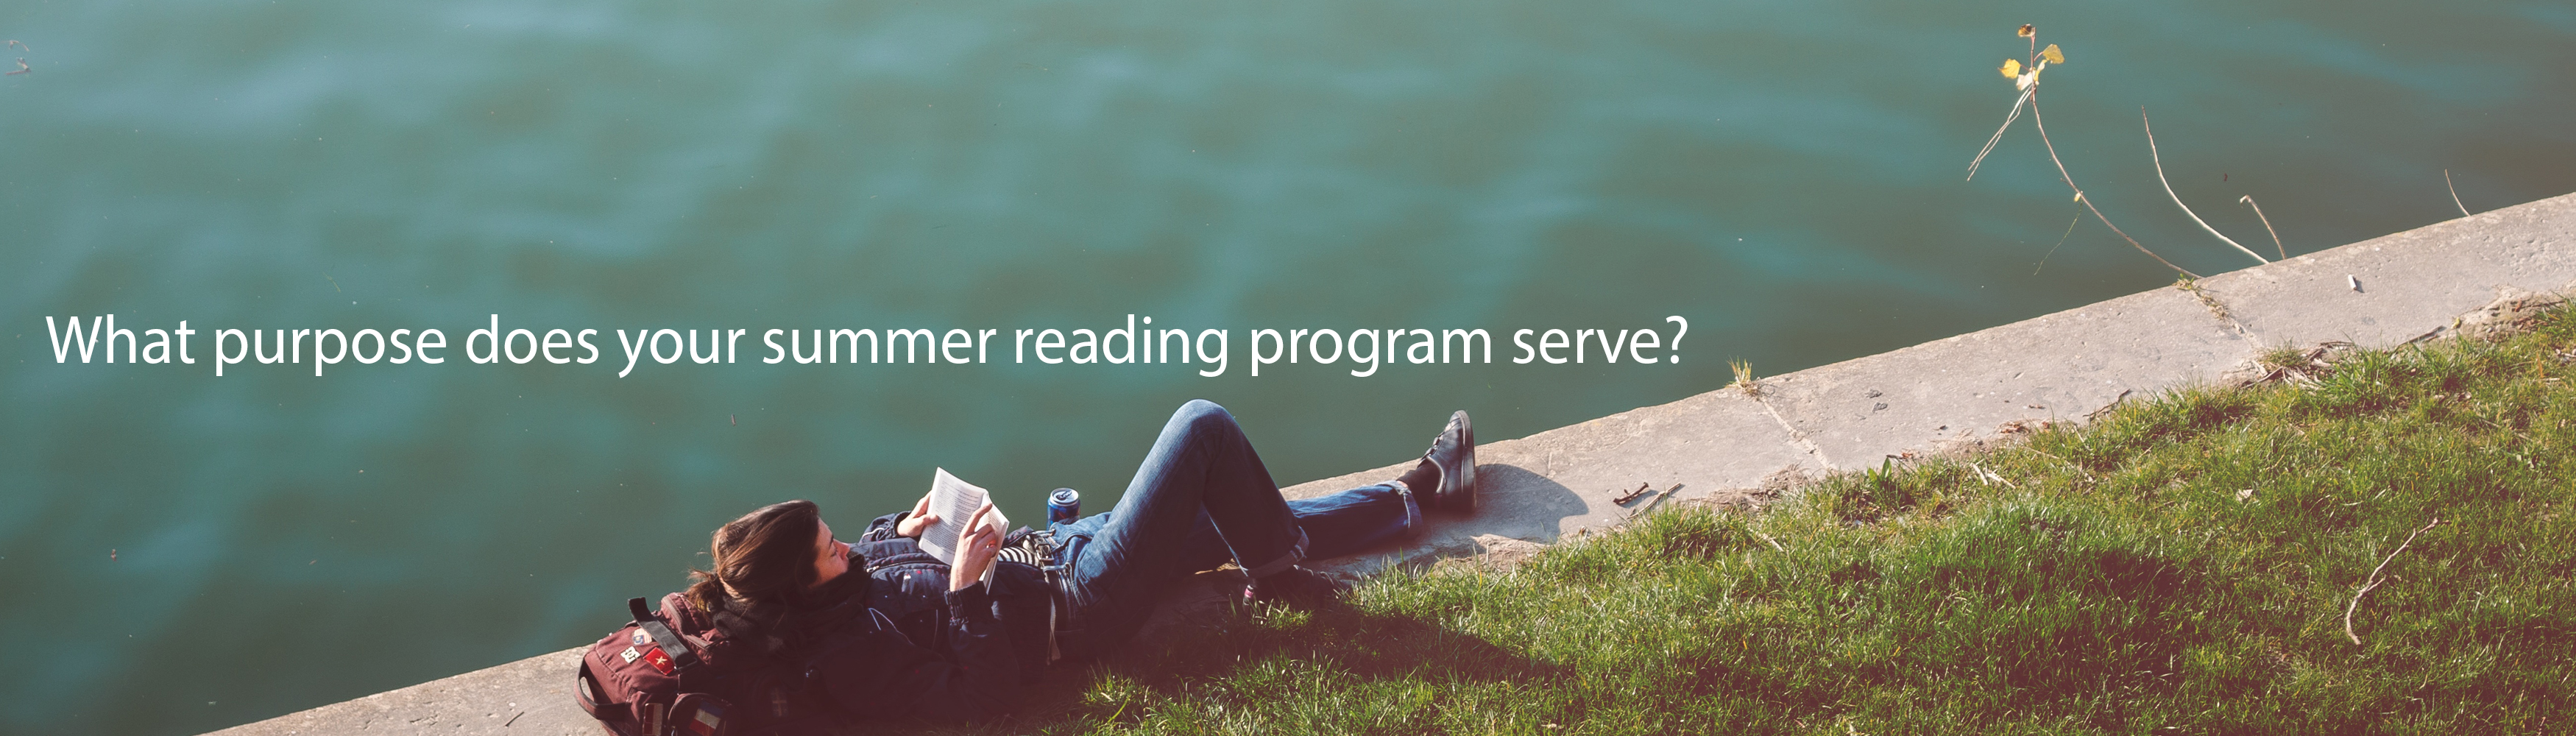 Summer Reading Program Purpose